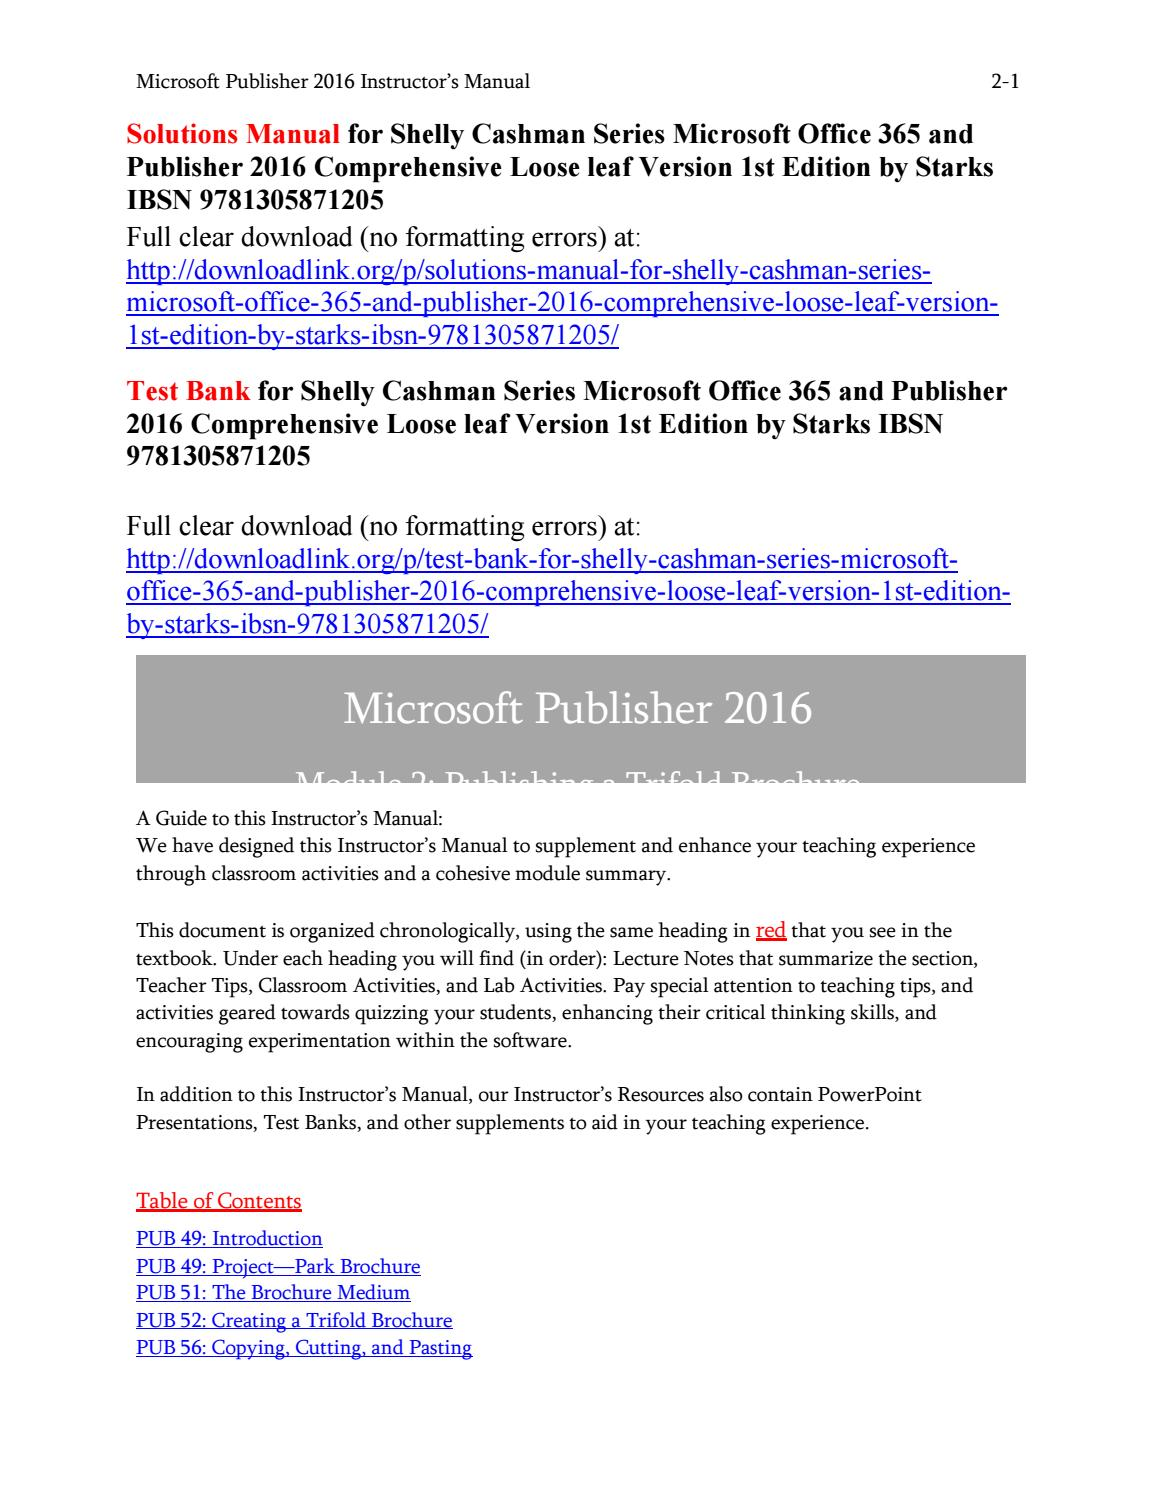 Solutions manual for shelly cashman series microsoft office 365 and  publisher 2016 comprehensive loo by Beskeen723 - issuu